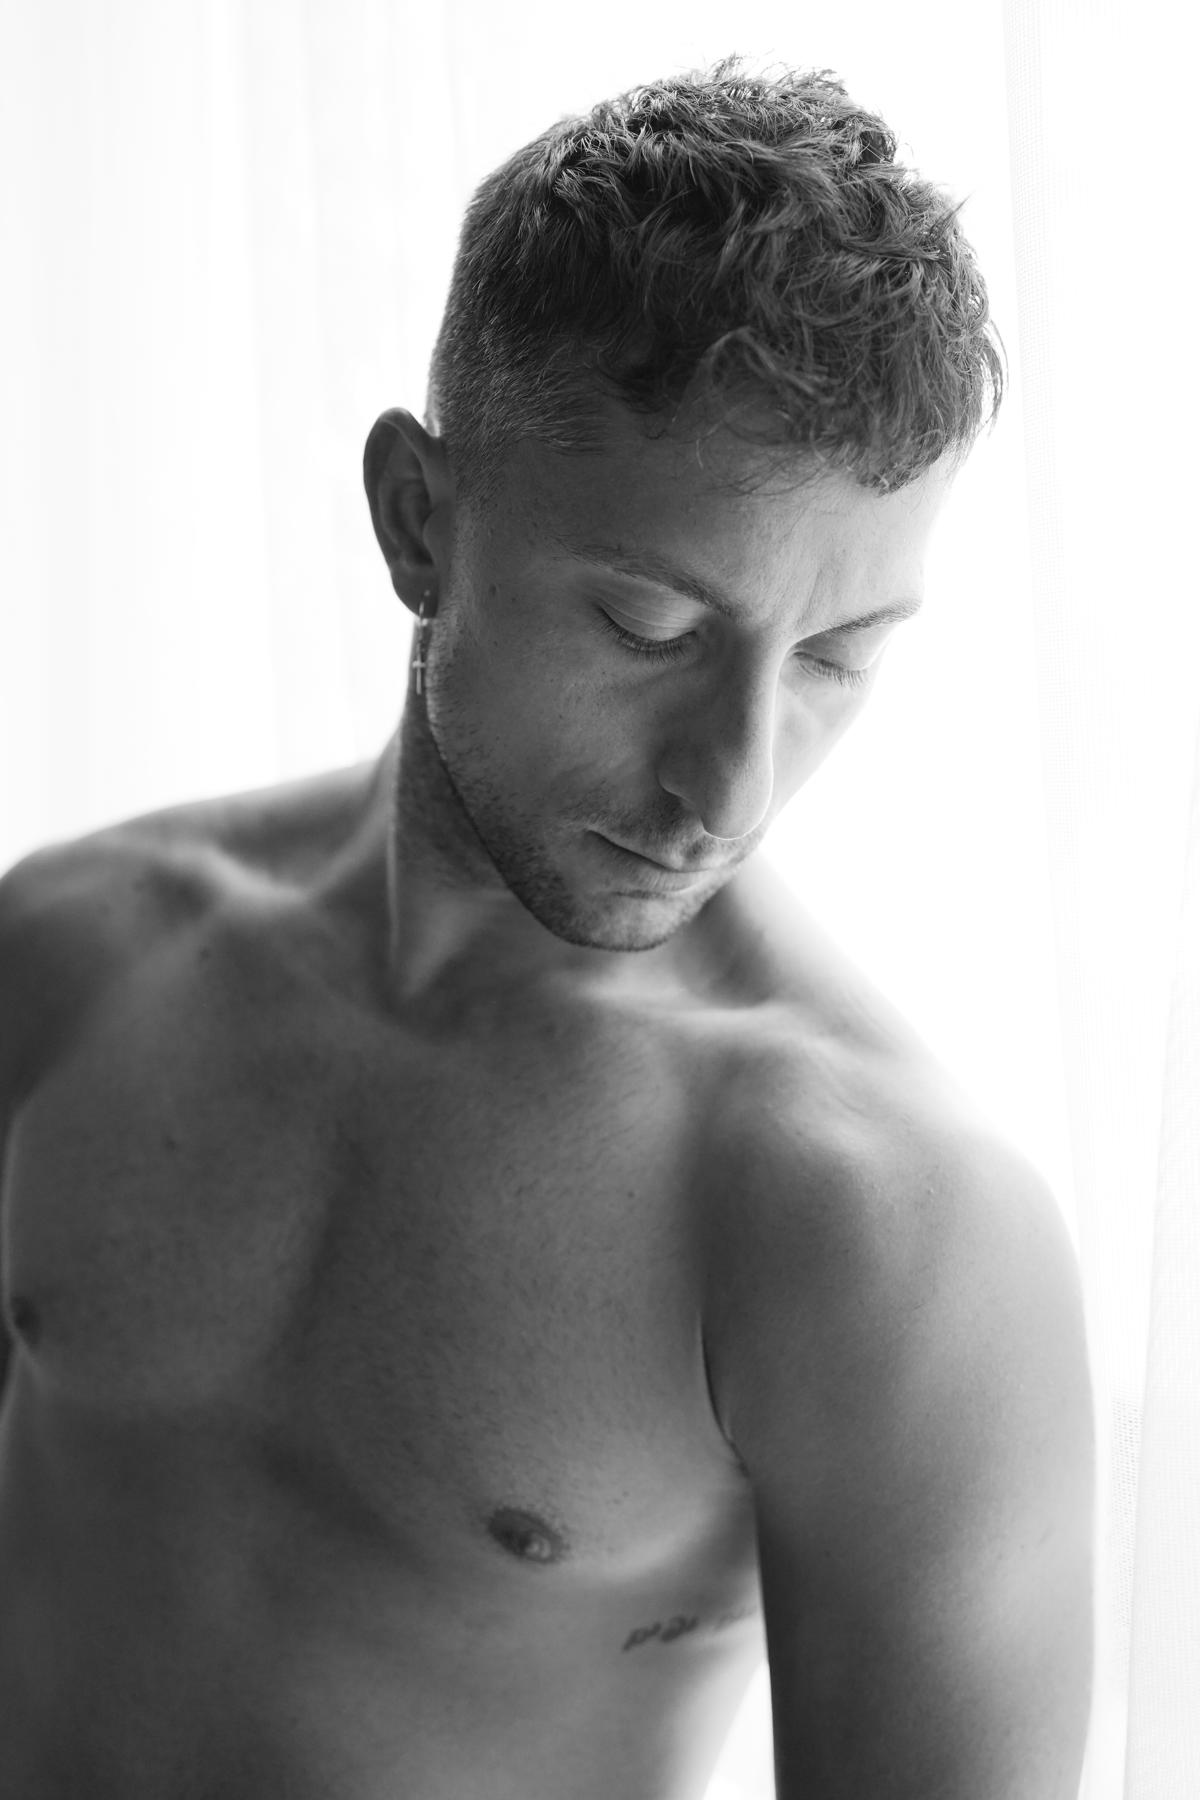 Simply Boys: Gianmarco from Italy